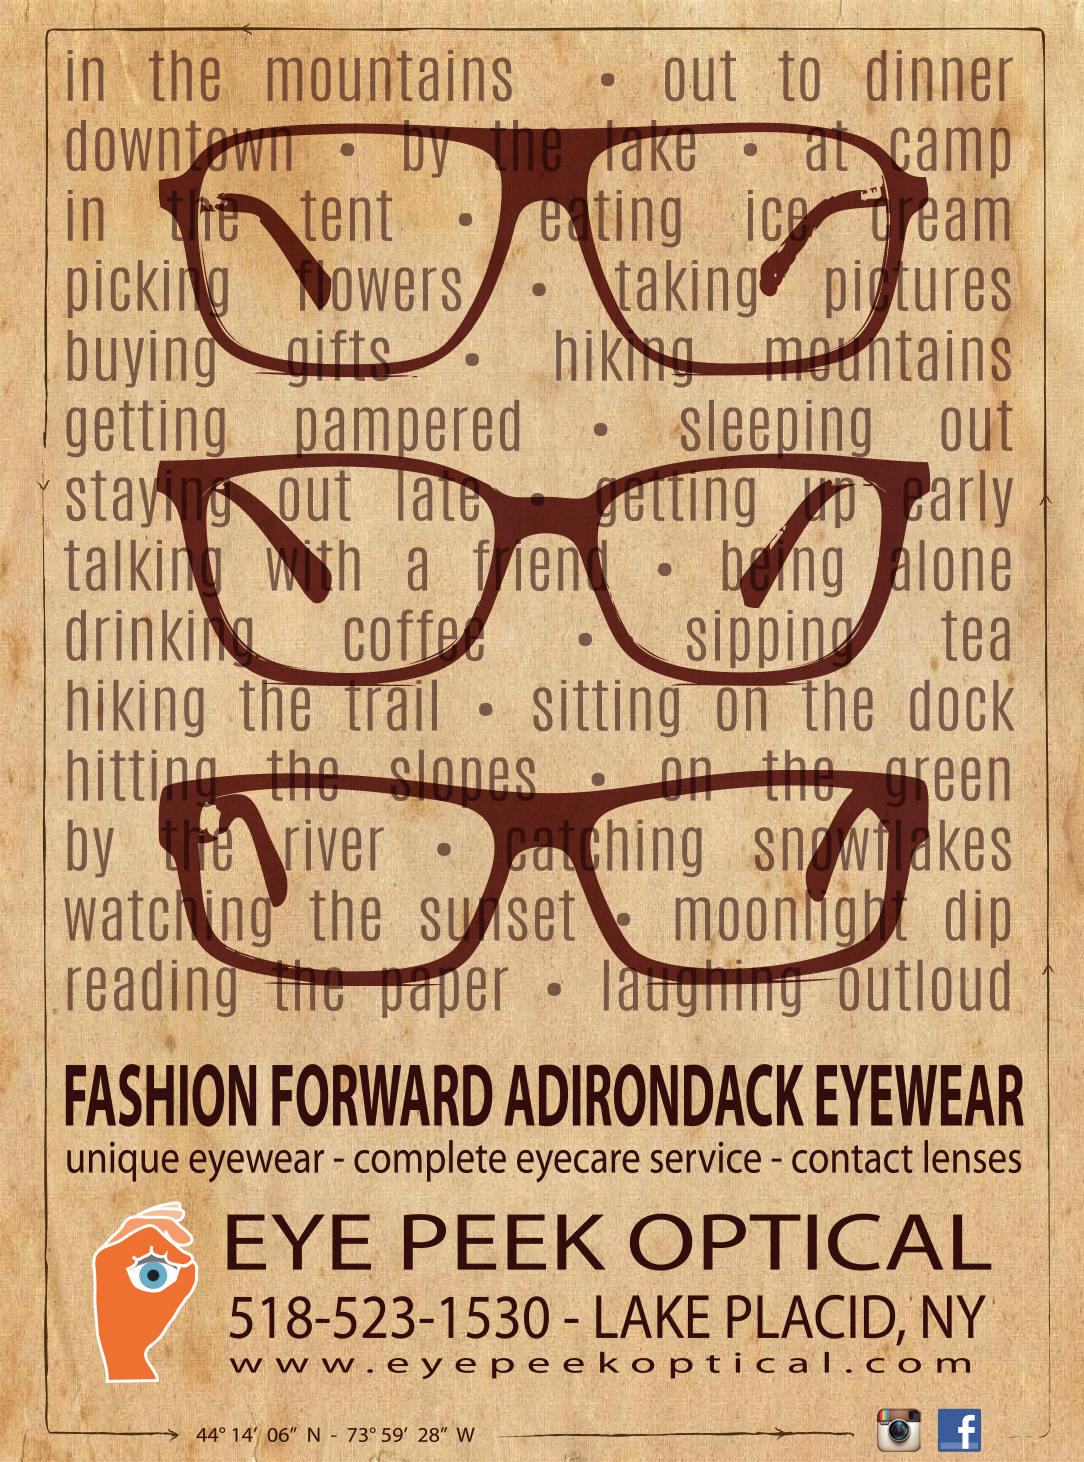 Eye Peek Optical